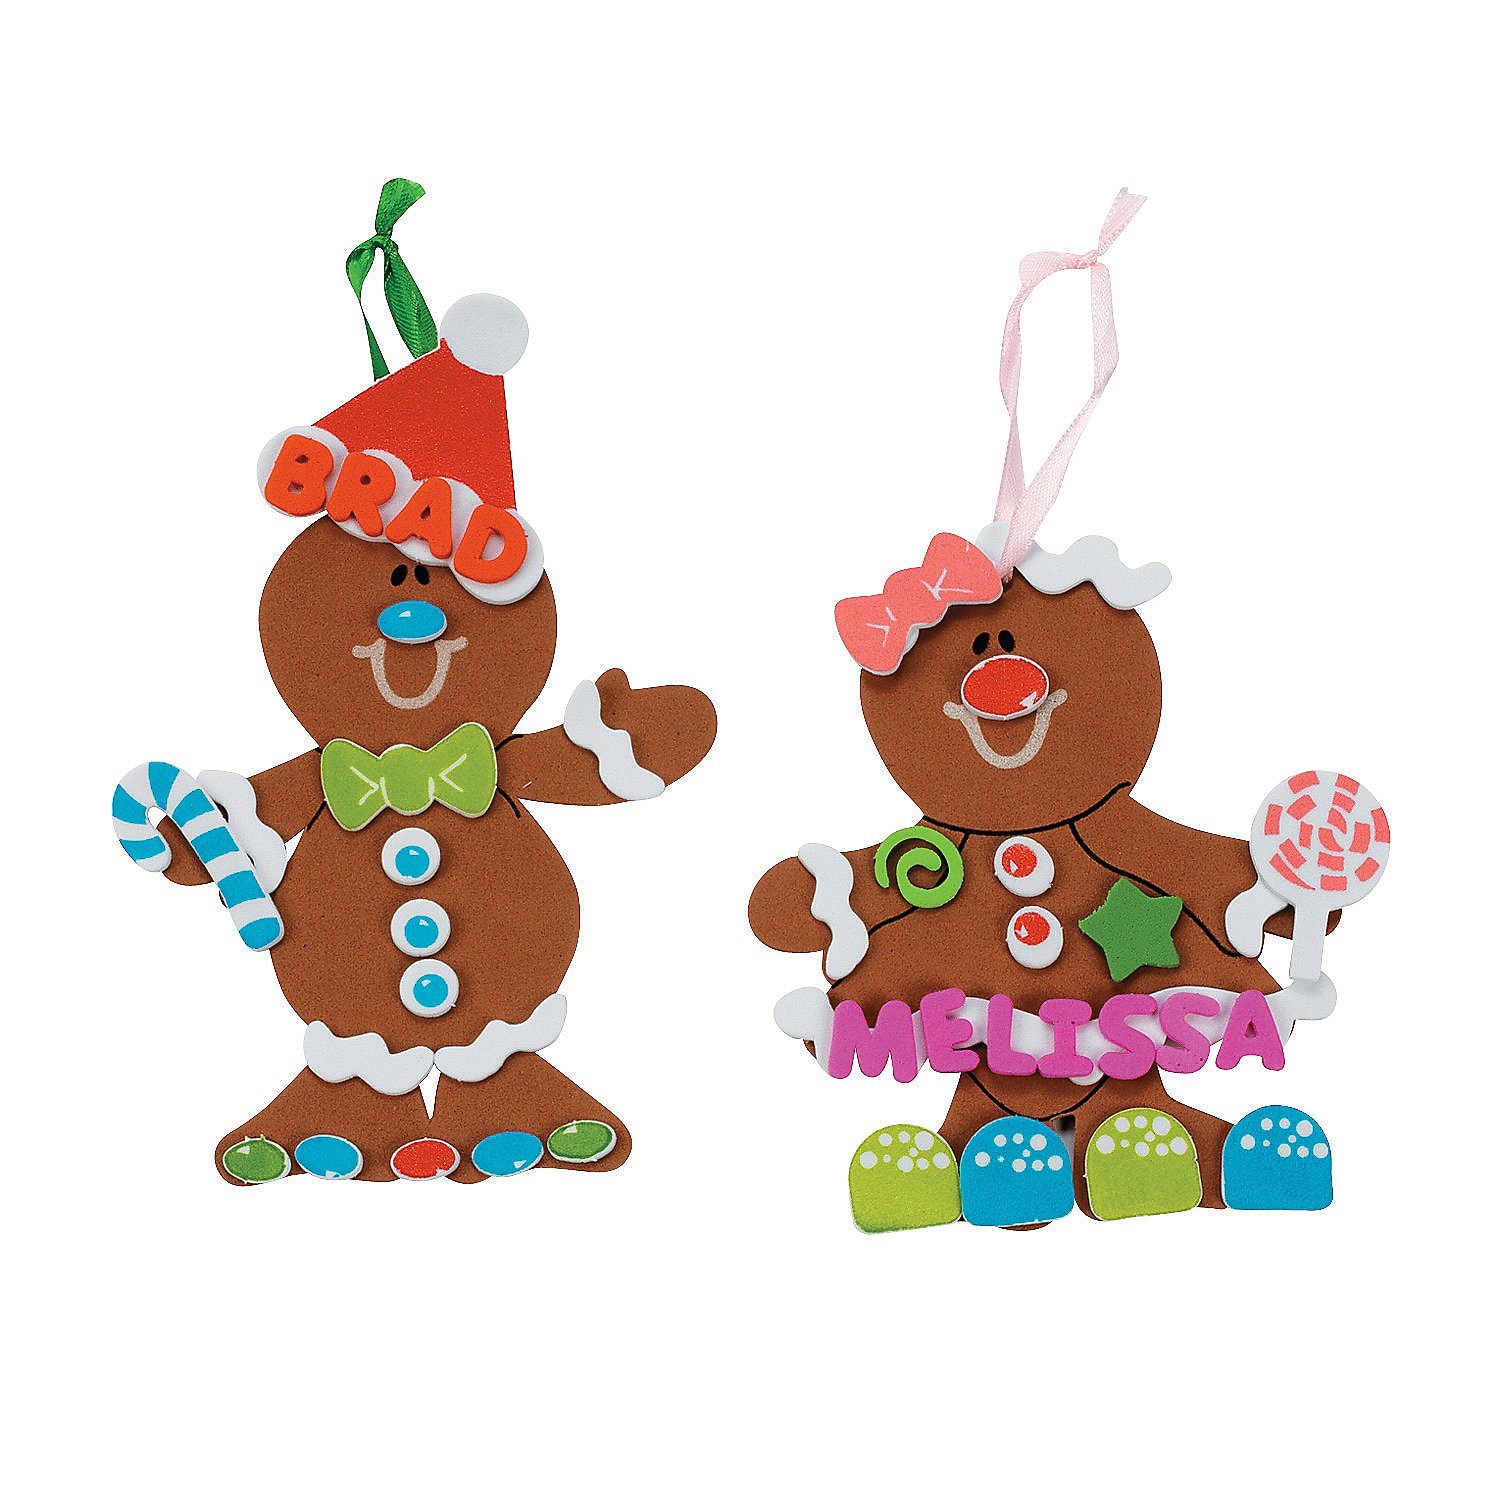 Fabulous foam gingerbread christmas ornament craft kit makes 48